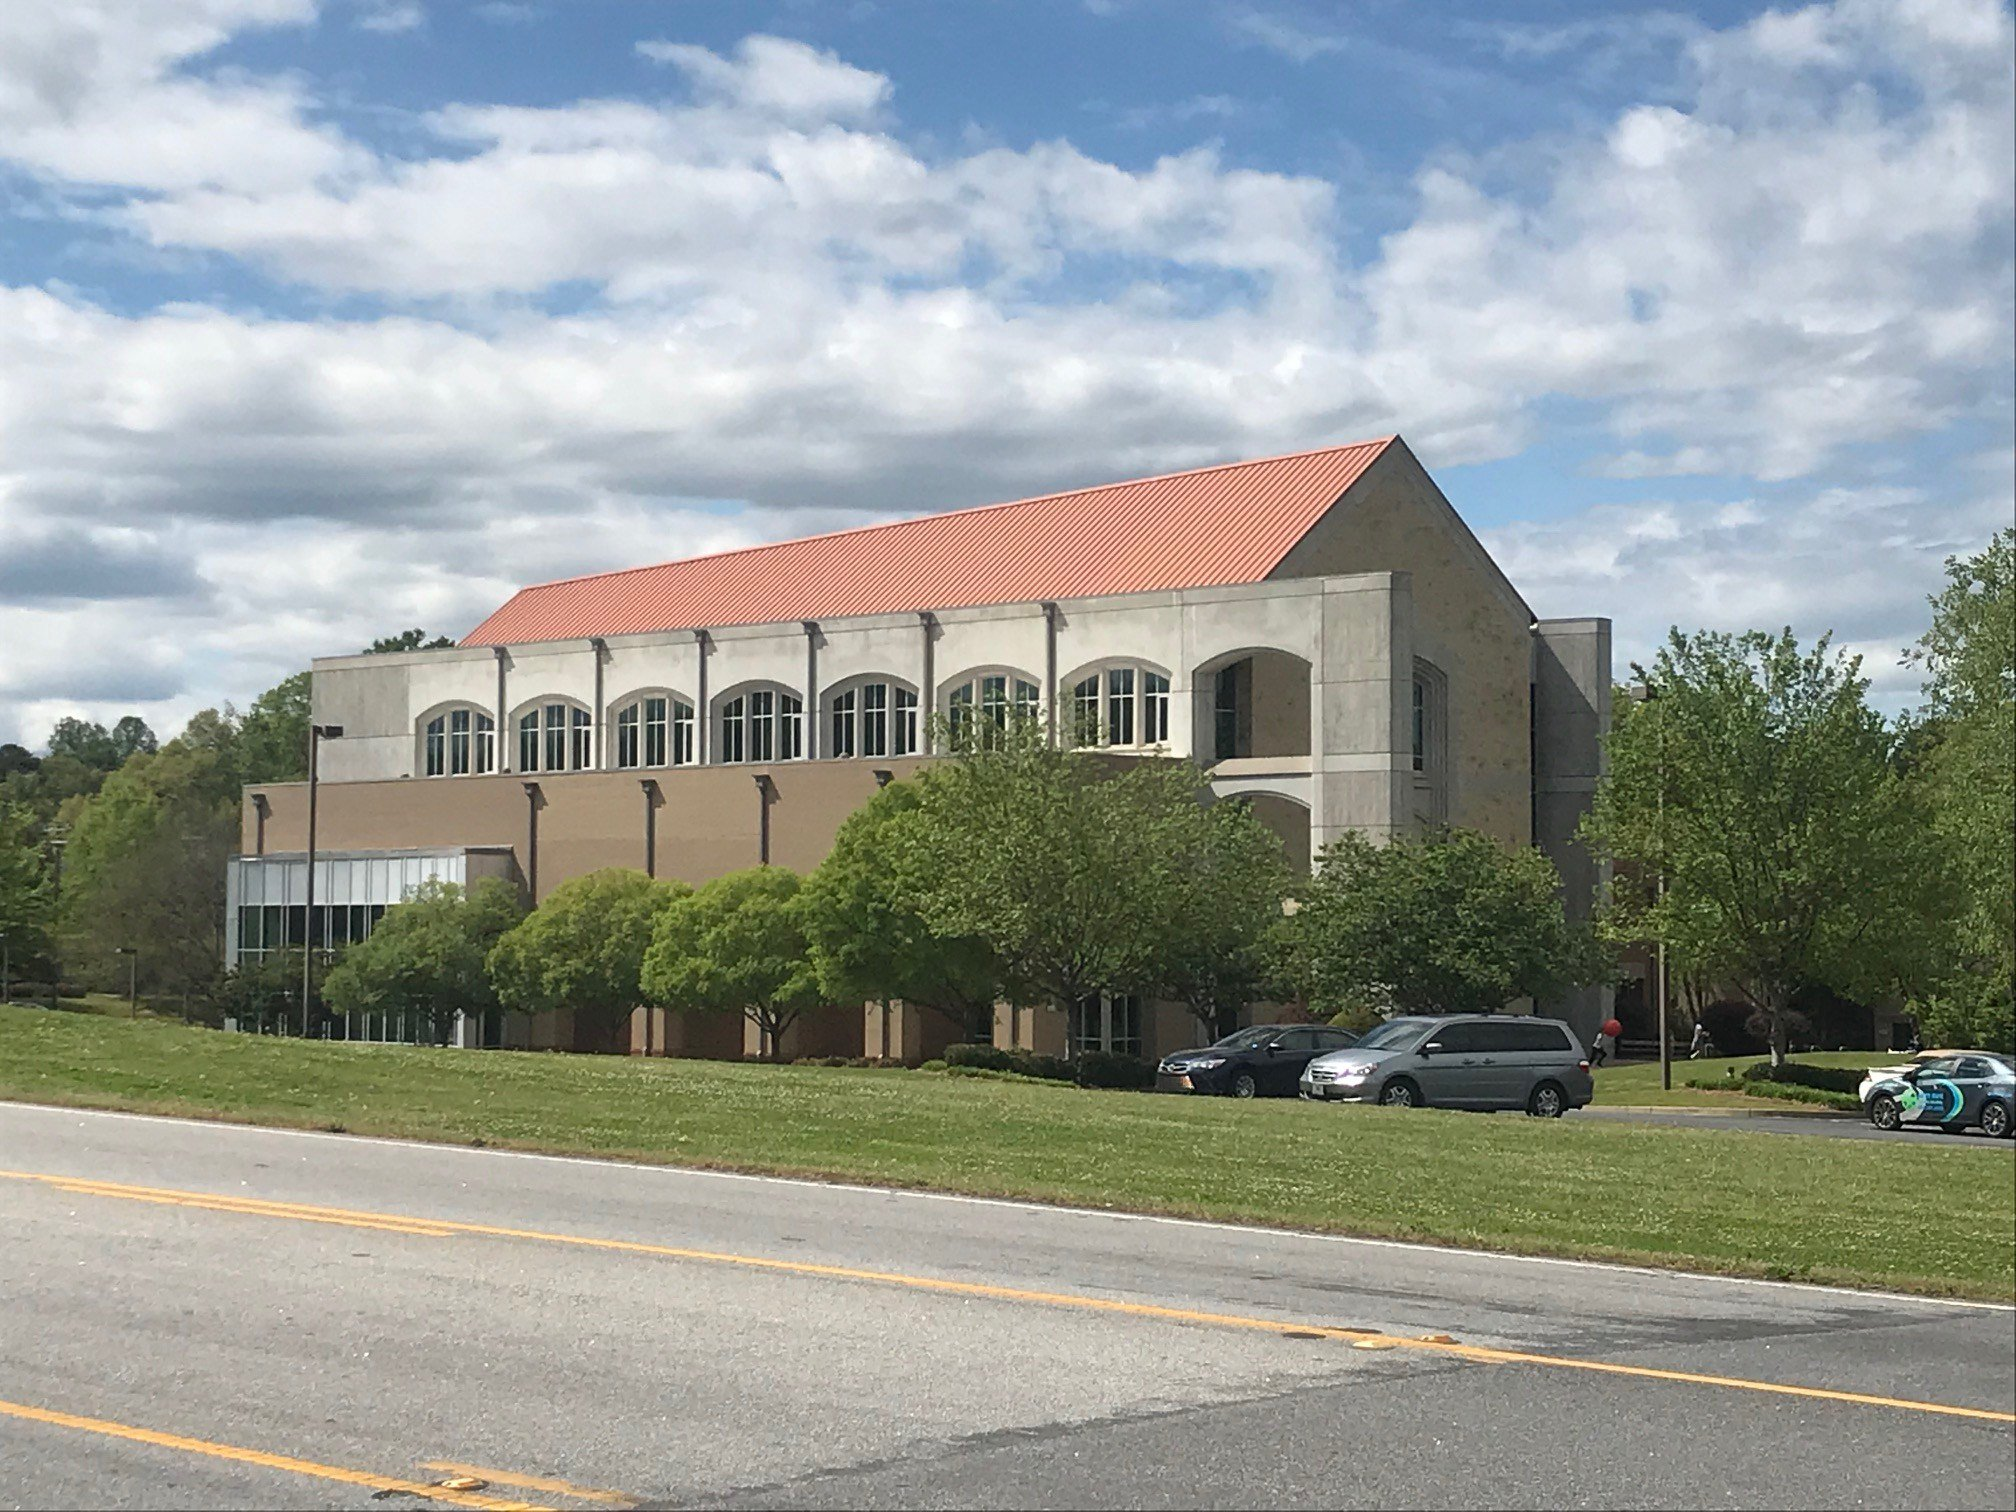 Prince of Peace Catholic School (Apr. 25, 2018/FOX Carolina)